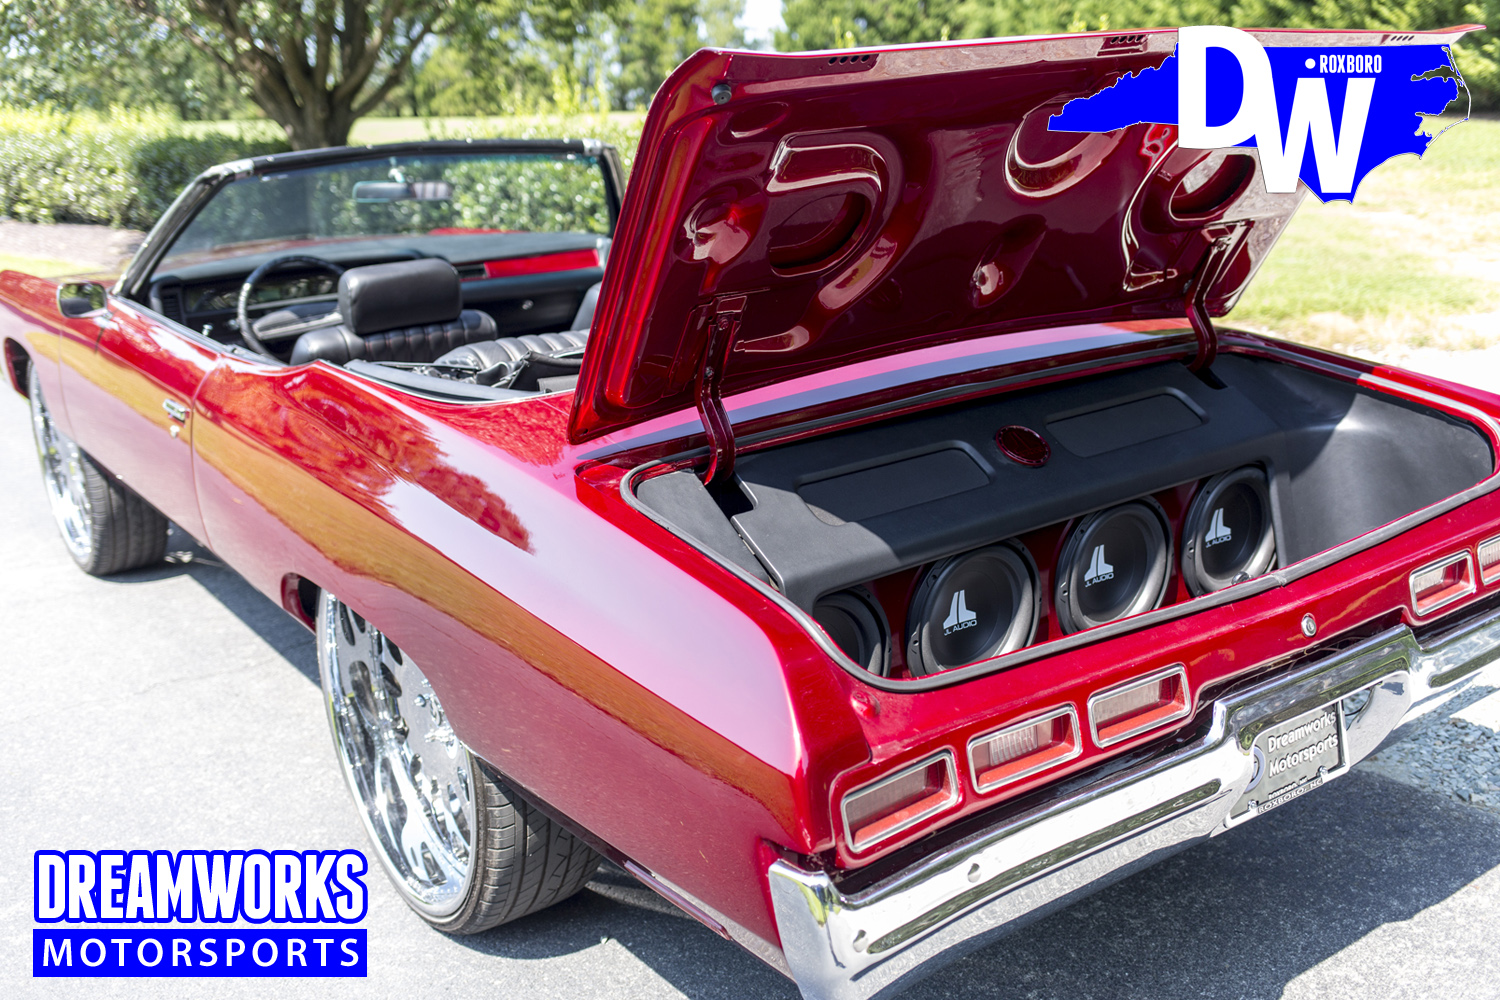 Donk-on-Forgiatos-With-JL-Audio-System-by-Dreamworksmotorsports-11.jpg